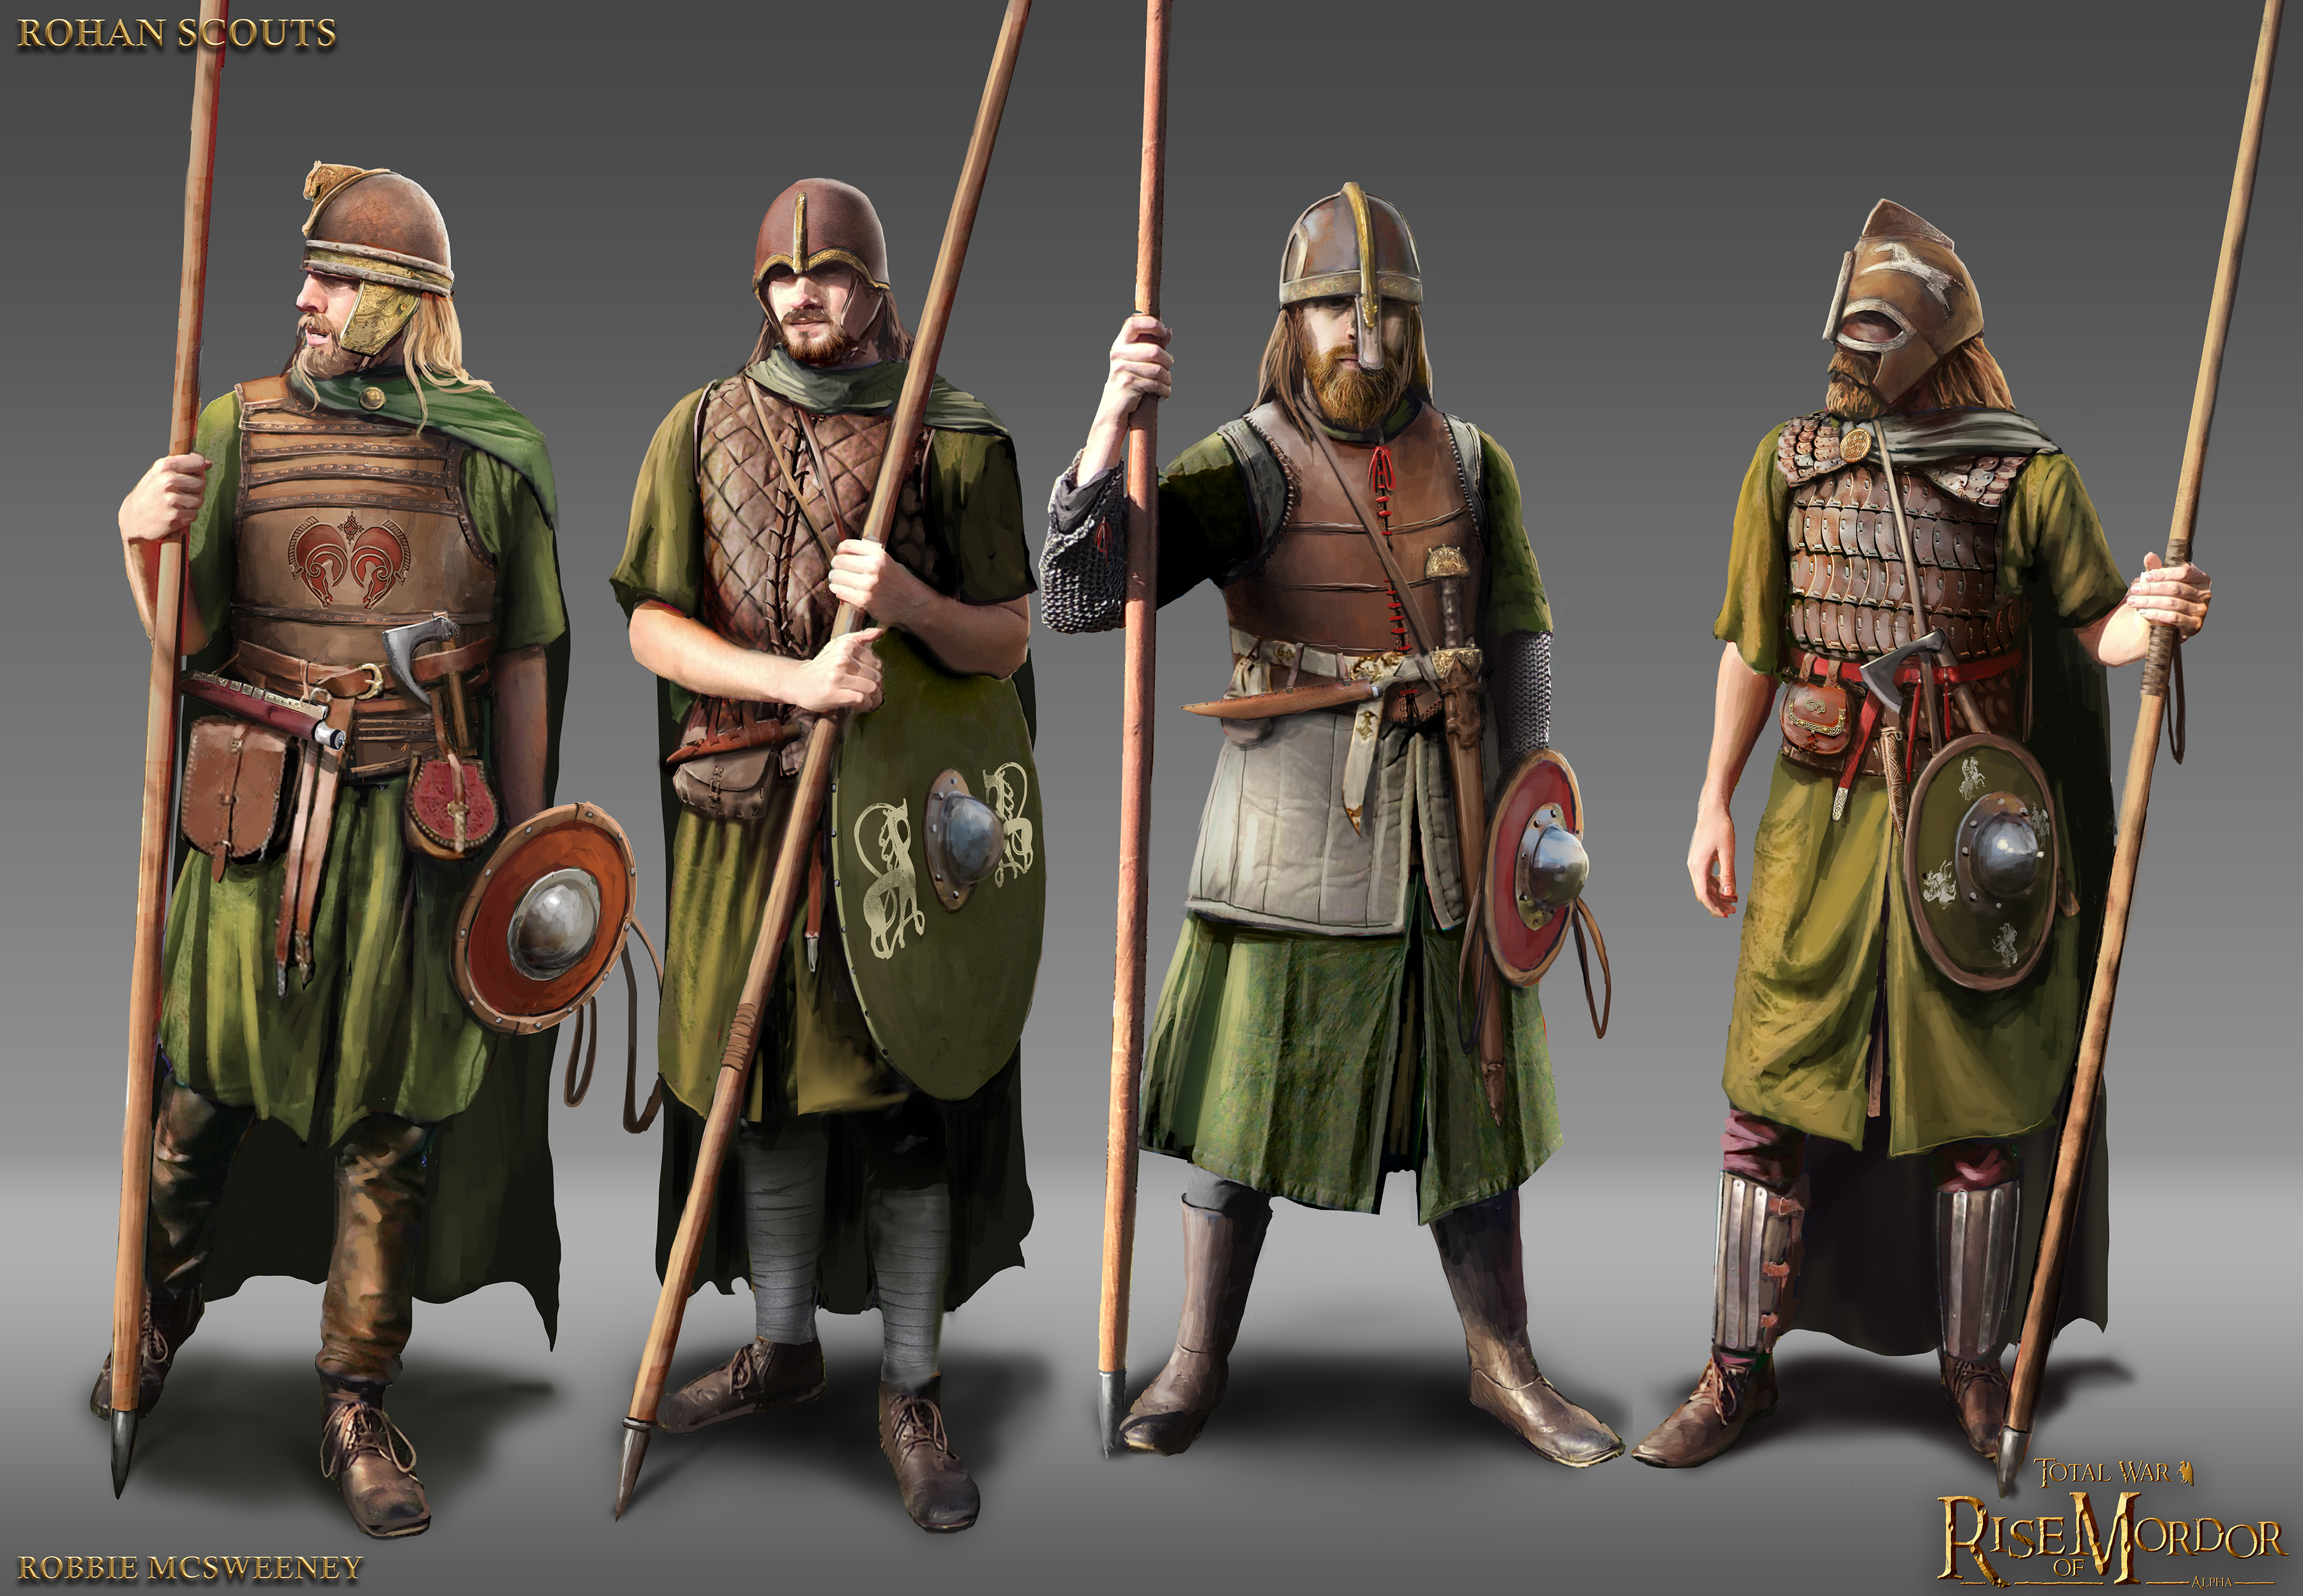 Rohan scouts concept image total war rise of mordor mod for Rohan design